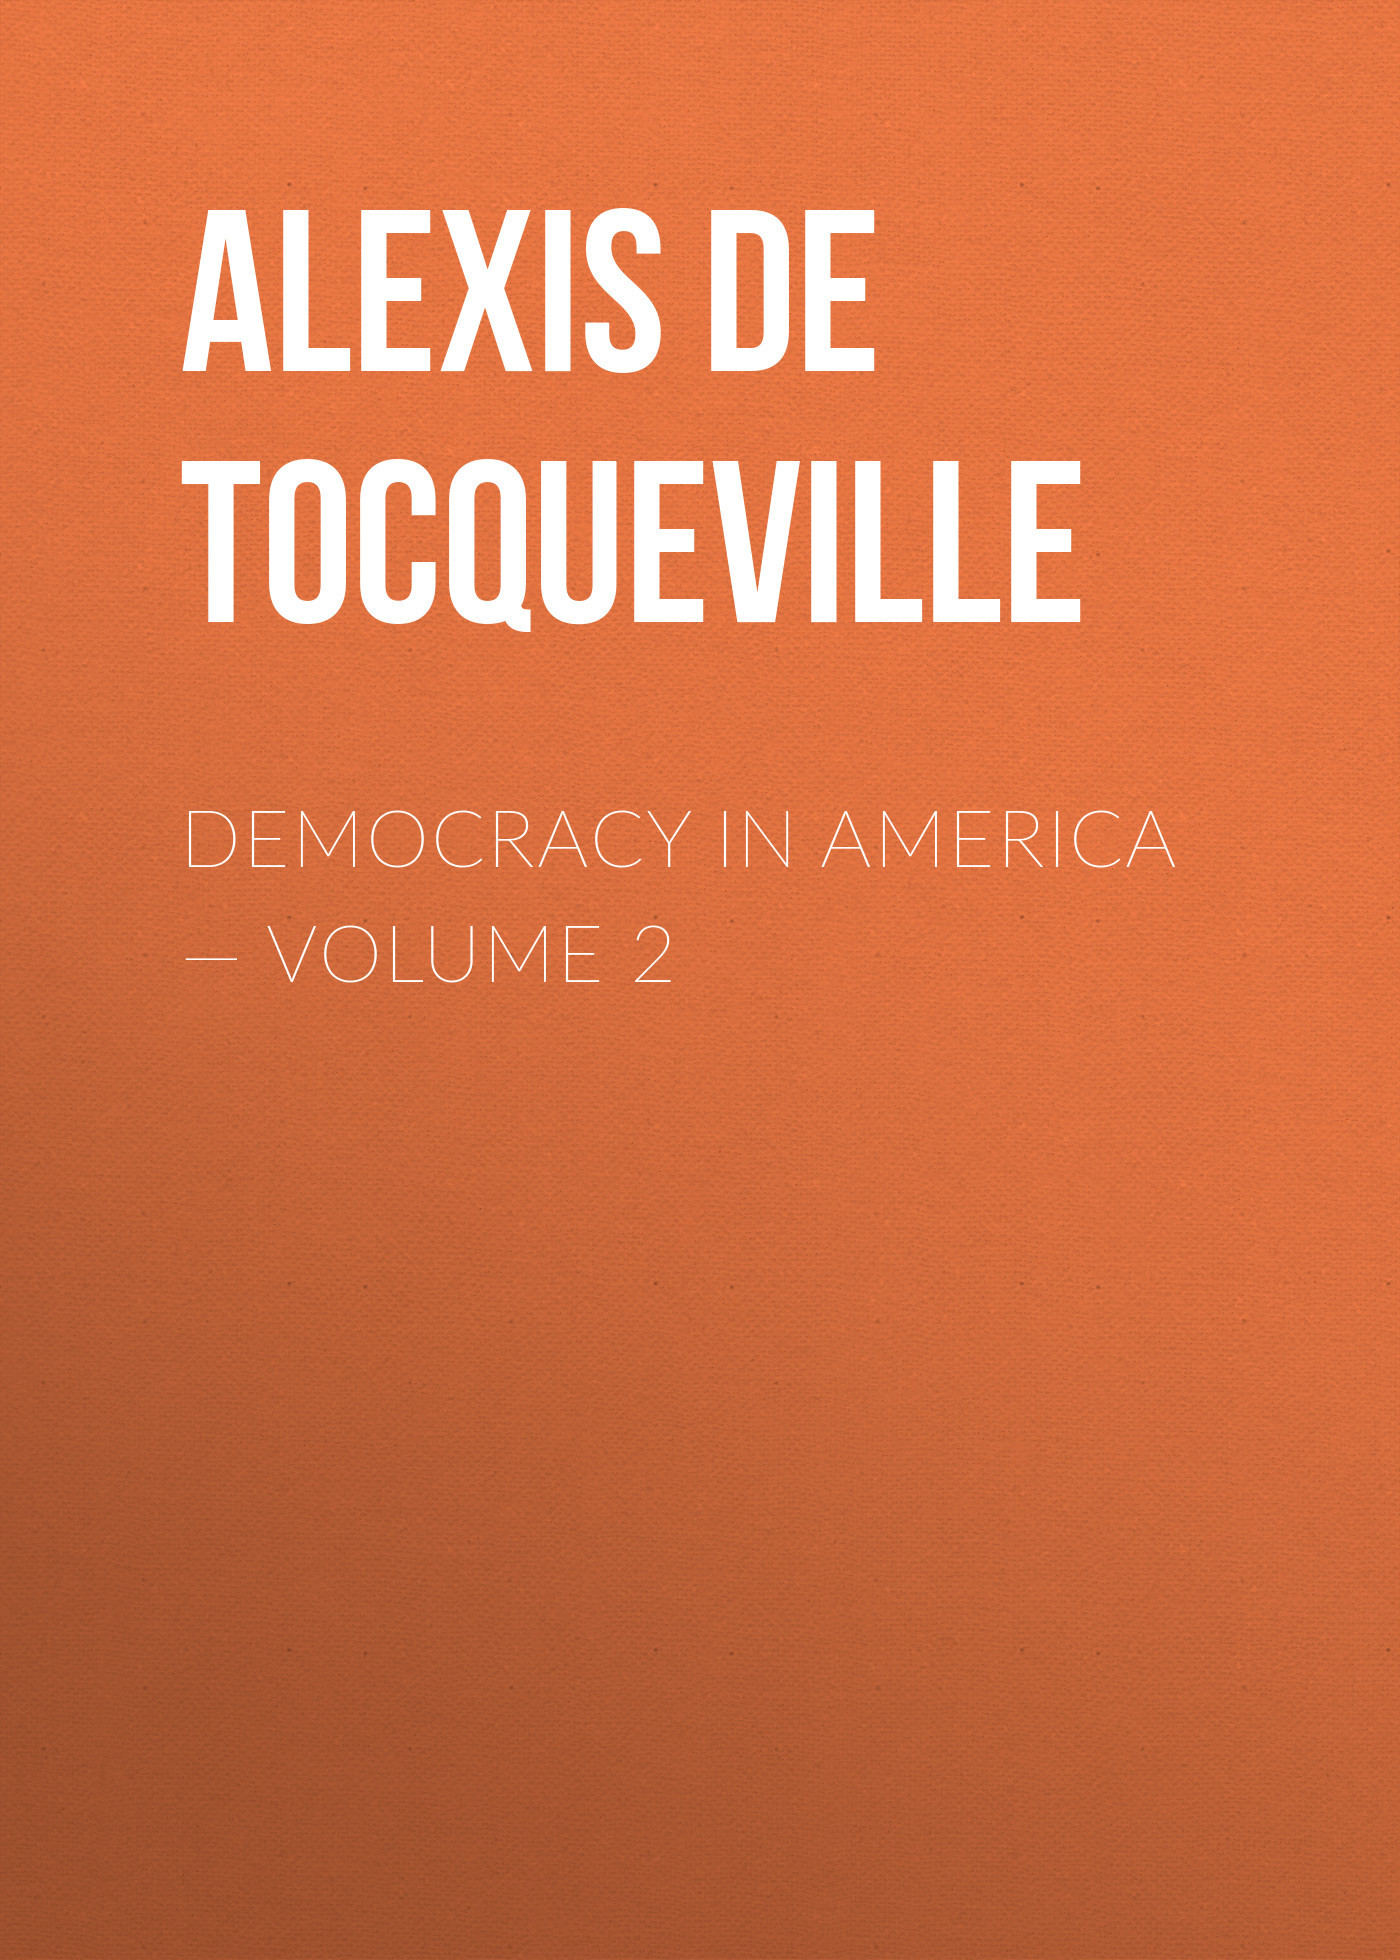 Alexis de Tocqueville Democracy in America — Volume 2 schutter helder de global democracy and exclusion